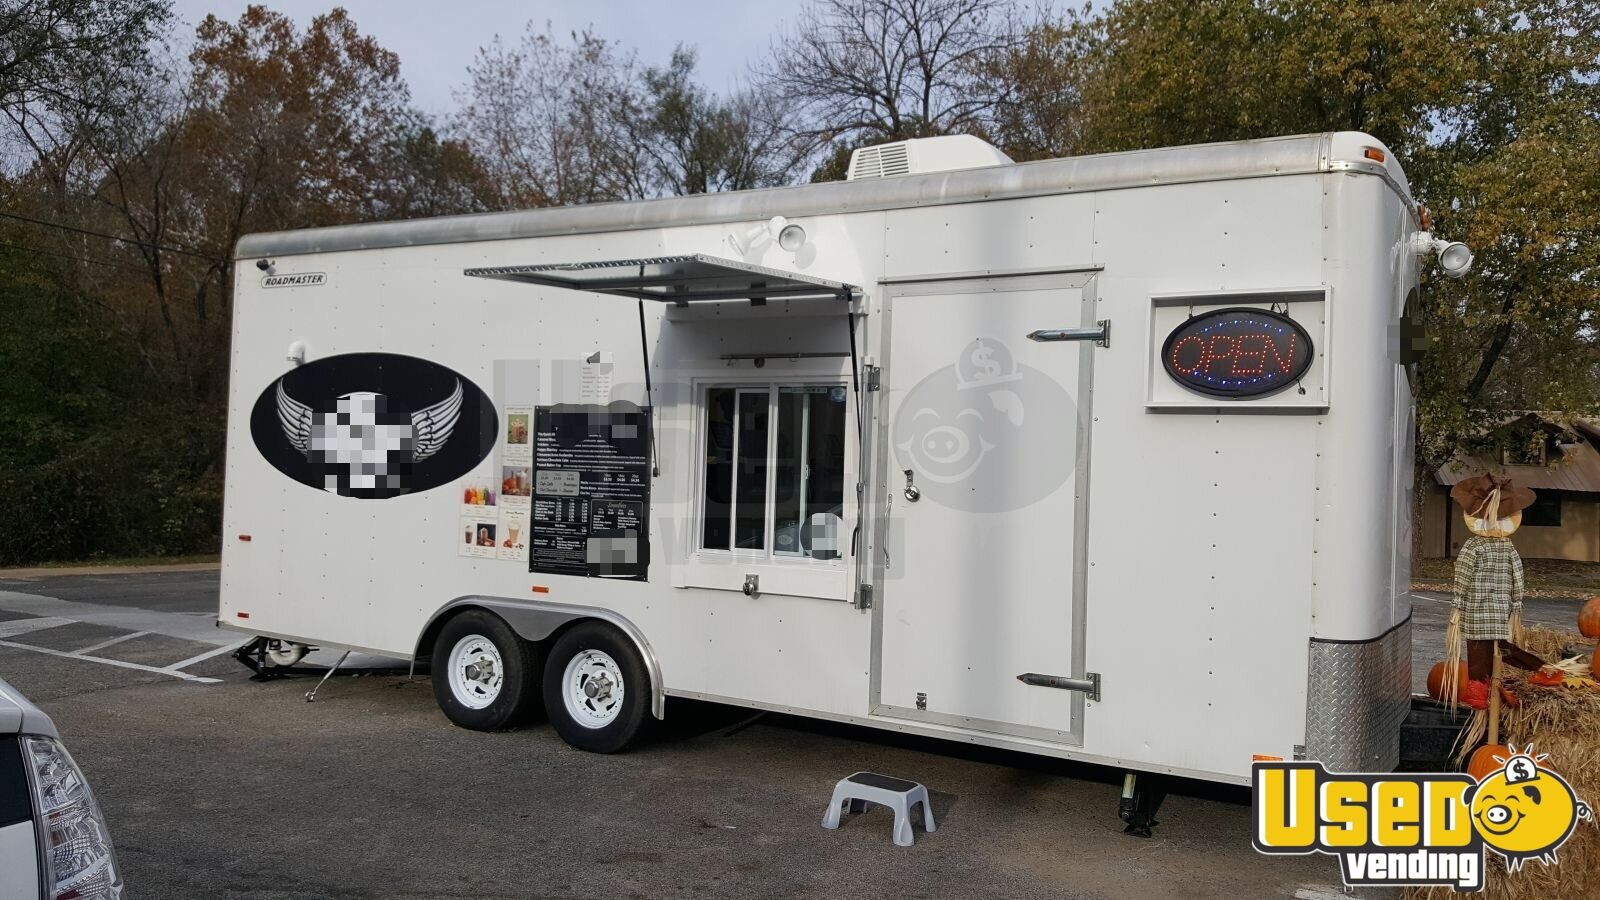 8' x 24' Drive Thru Coffee / Beverage Concession Trailer for Sale in  Arkansas!